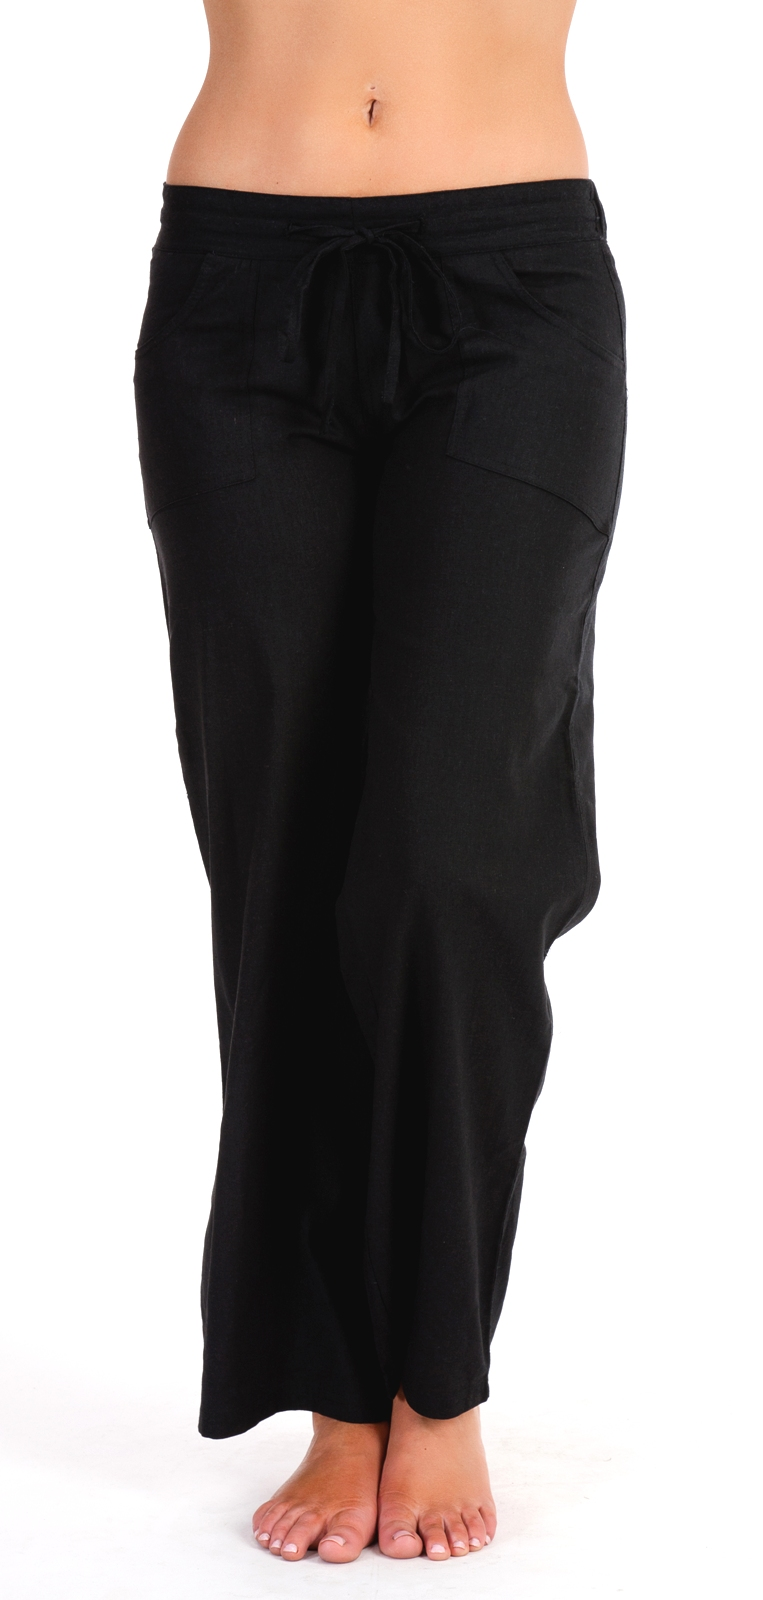 Related: black capri pants 16 black capri pants size 10 black capri pants plus size black capri jeans black capri dress pants. Include description. Categories. Selected category All. Clothing, Shoes & Accessories. Elementz Women's Black Capri Pants 2X .